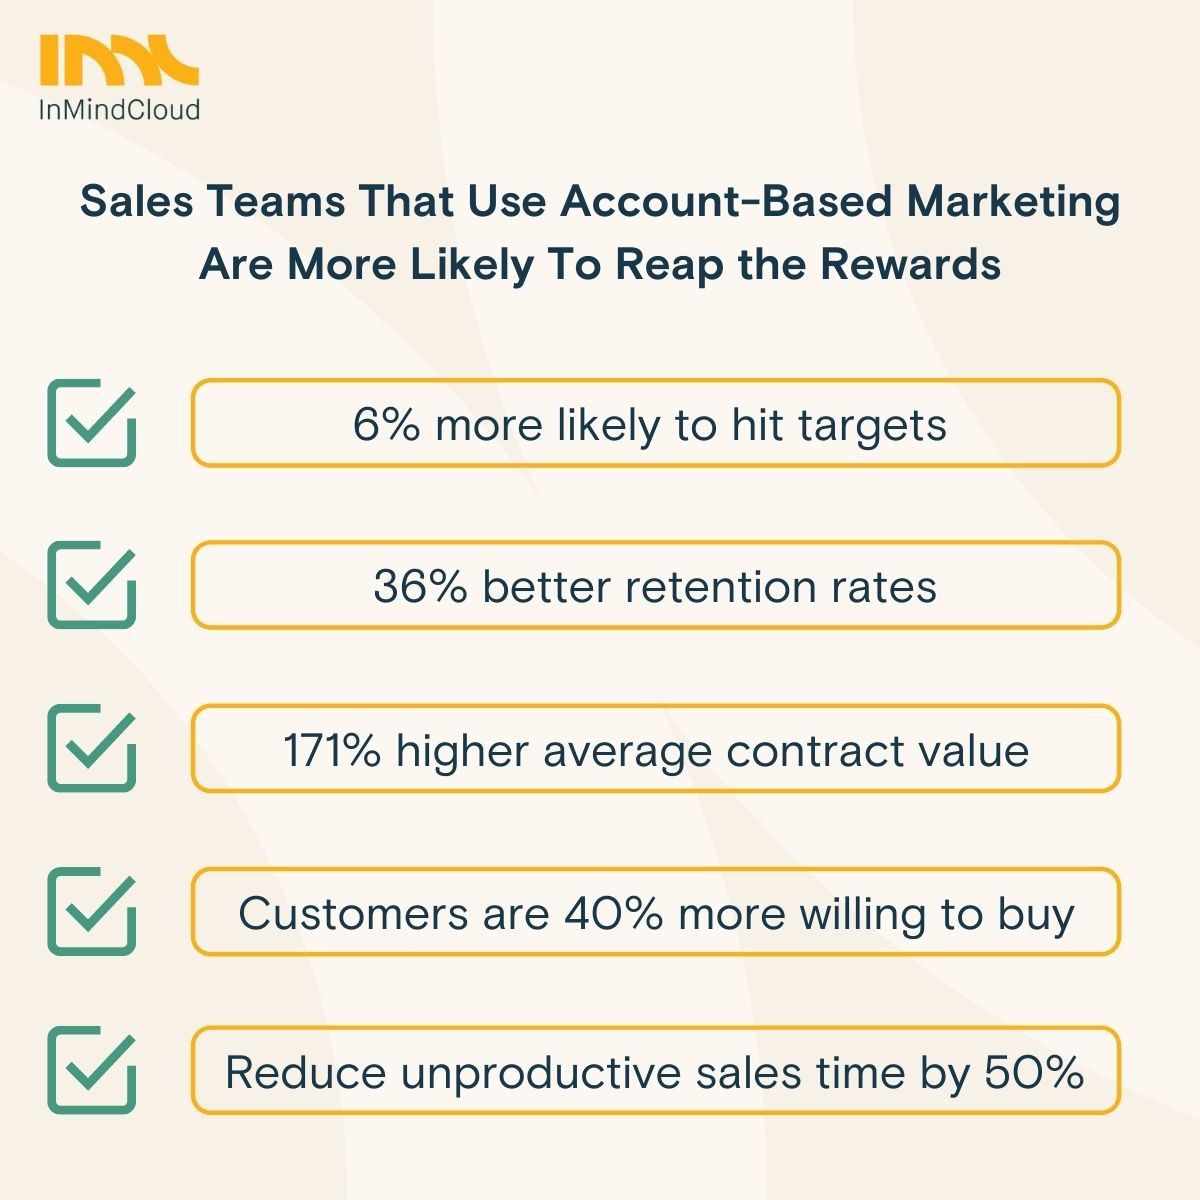 Sales Teams That Use ABM Are More Likely To Reap the Rewards 1